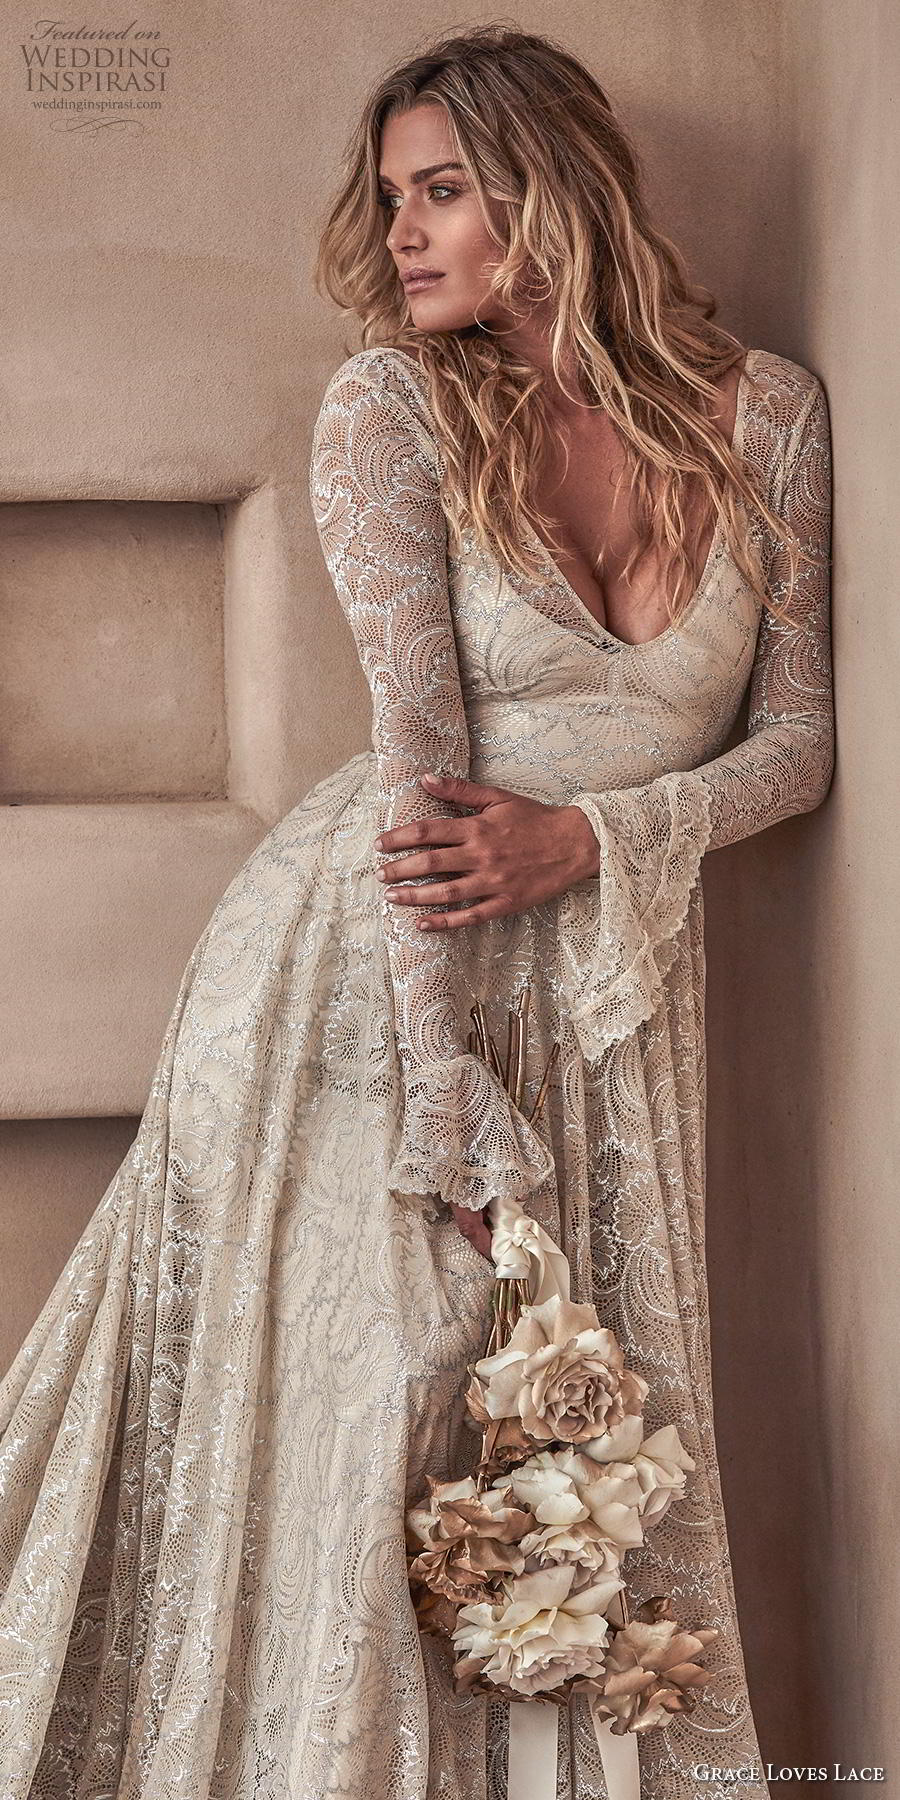 grace love lace 2020 bridal long poet sleeves deep v neck full embellishment elegant champagne color a  line wedding dress backless scoop back chapel train (3) lv